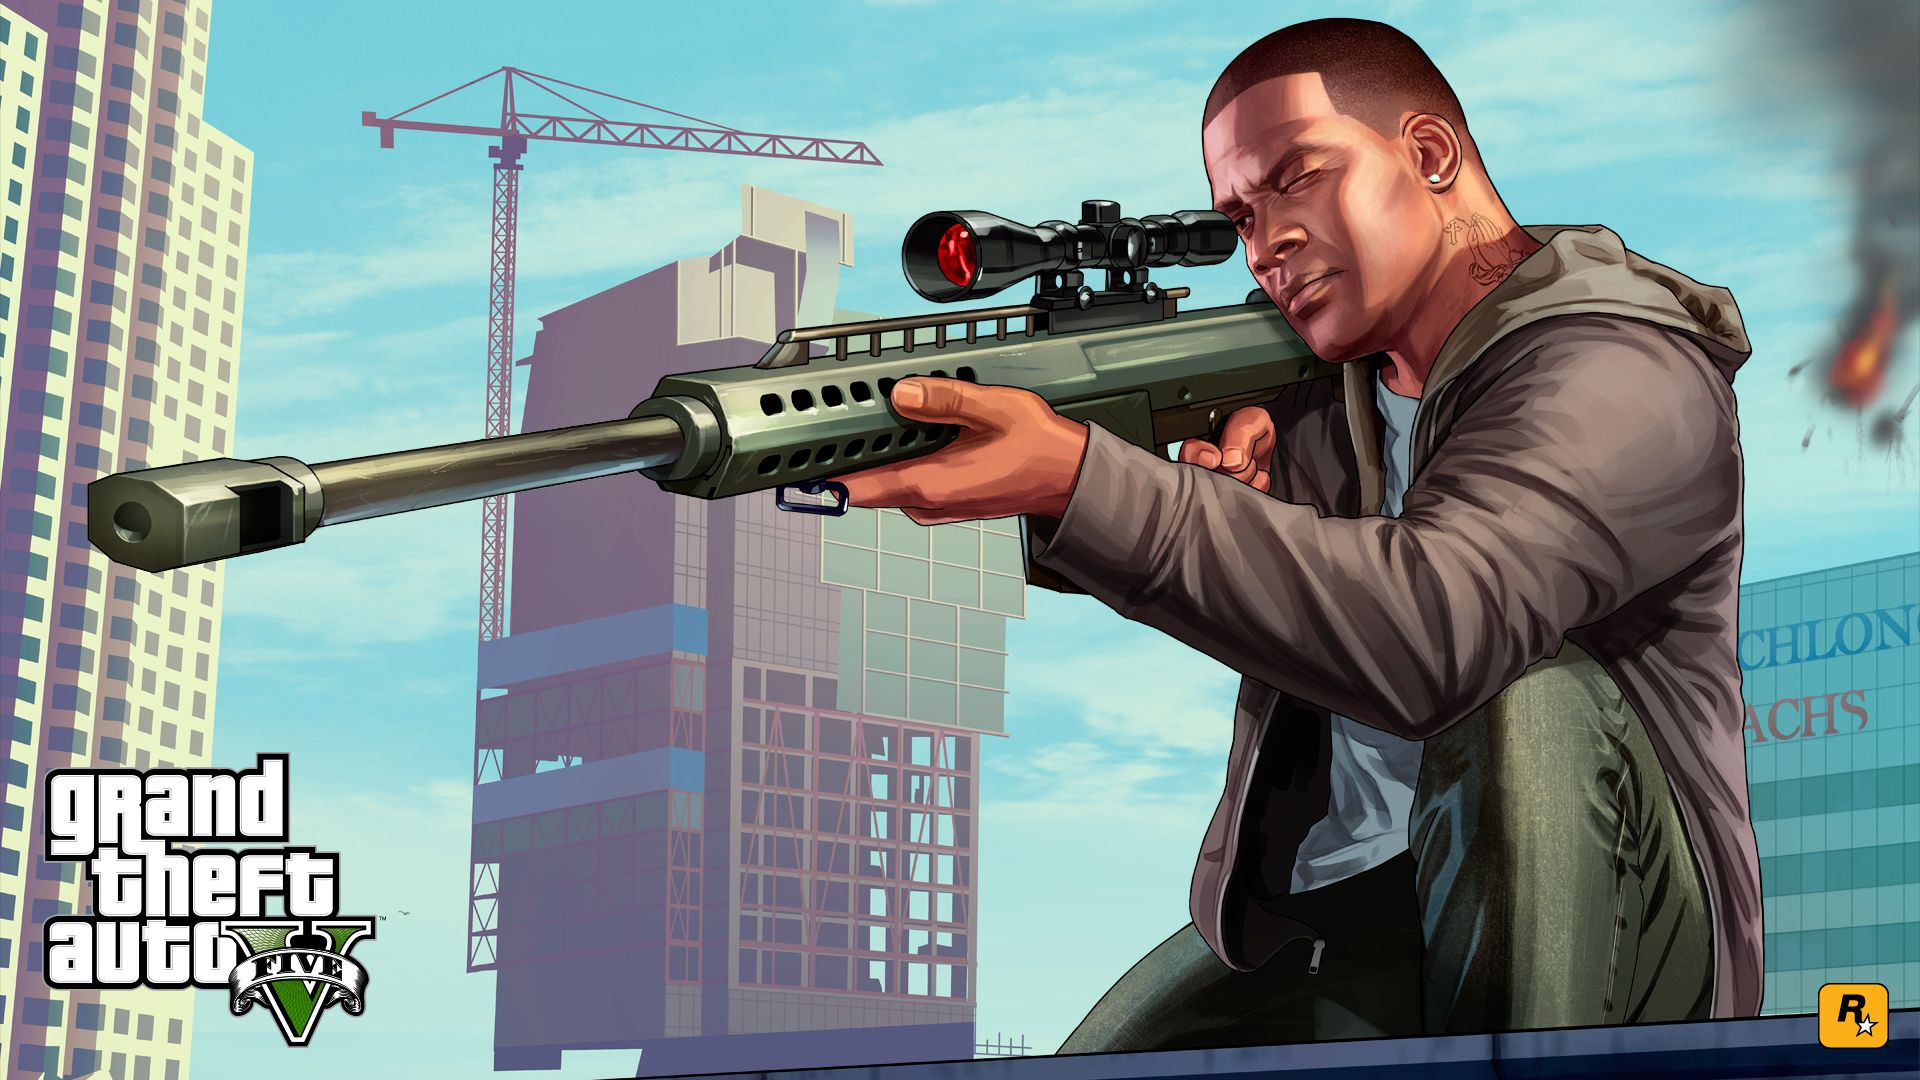 wallpaper rockstar north weapons michael gta grand theft | 3d